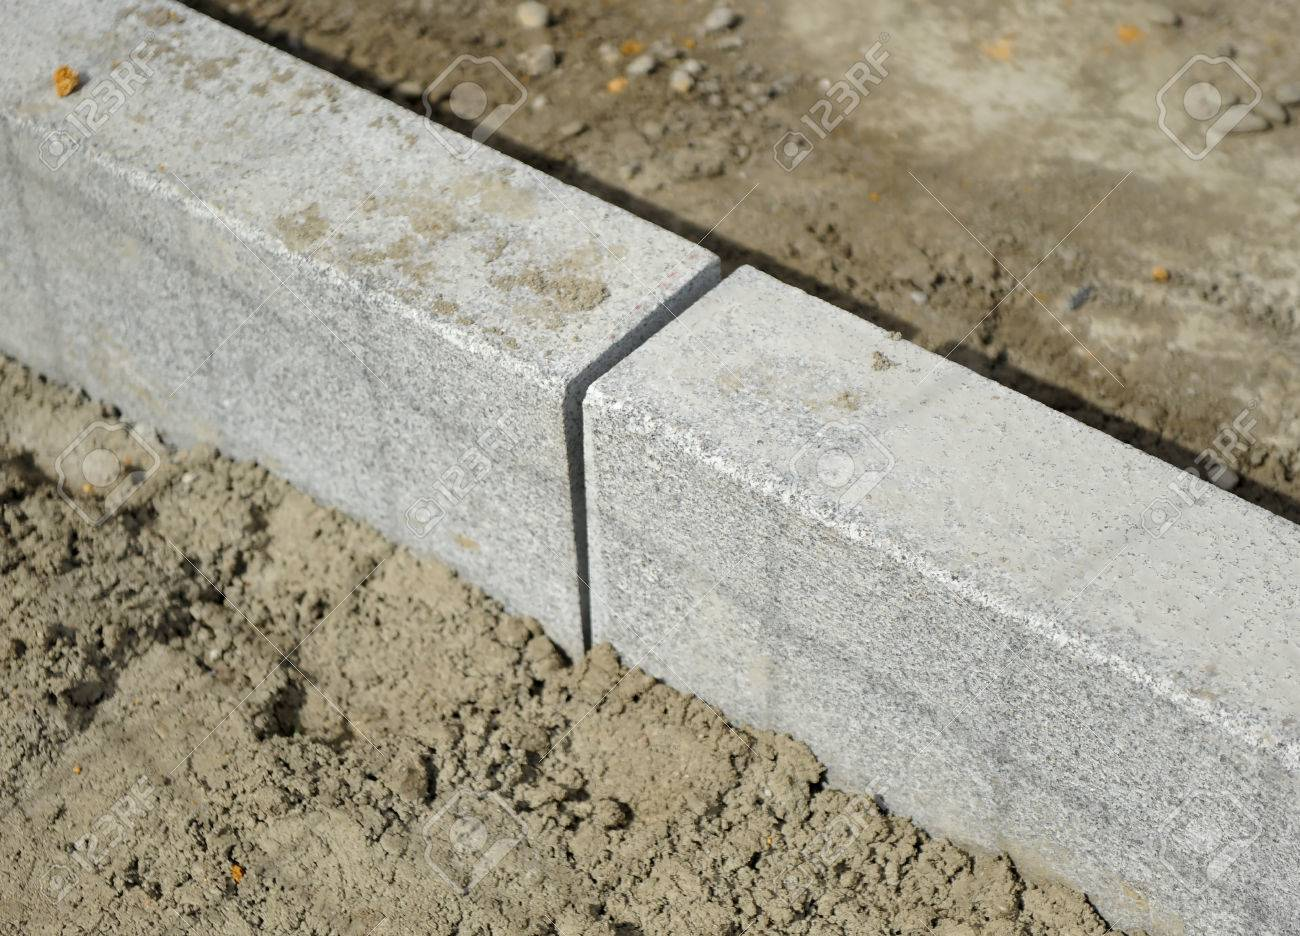 Laying granite curb on the sidewalk on a street